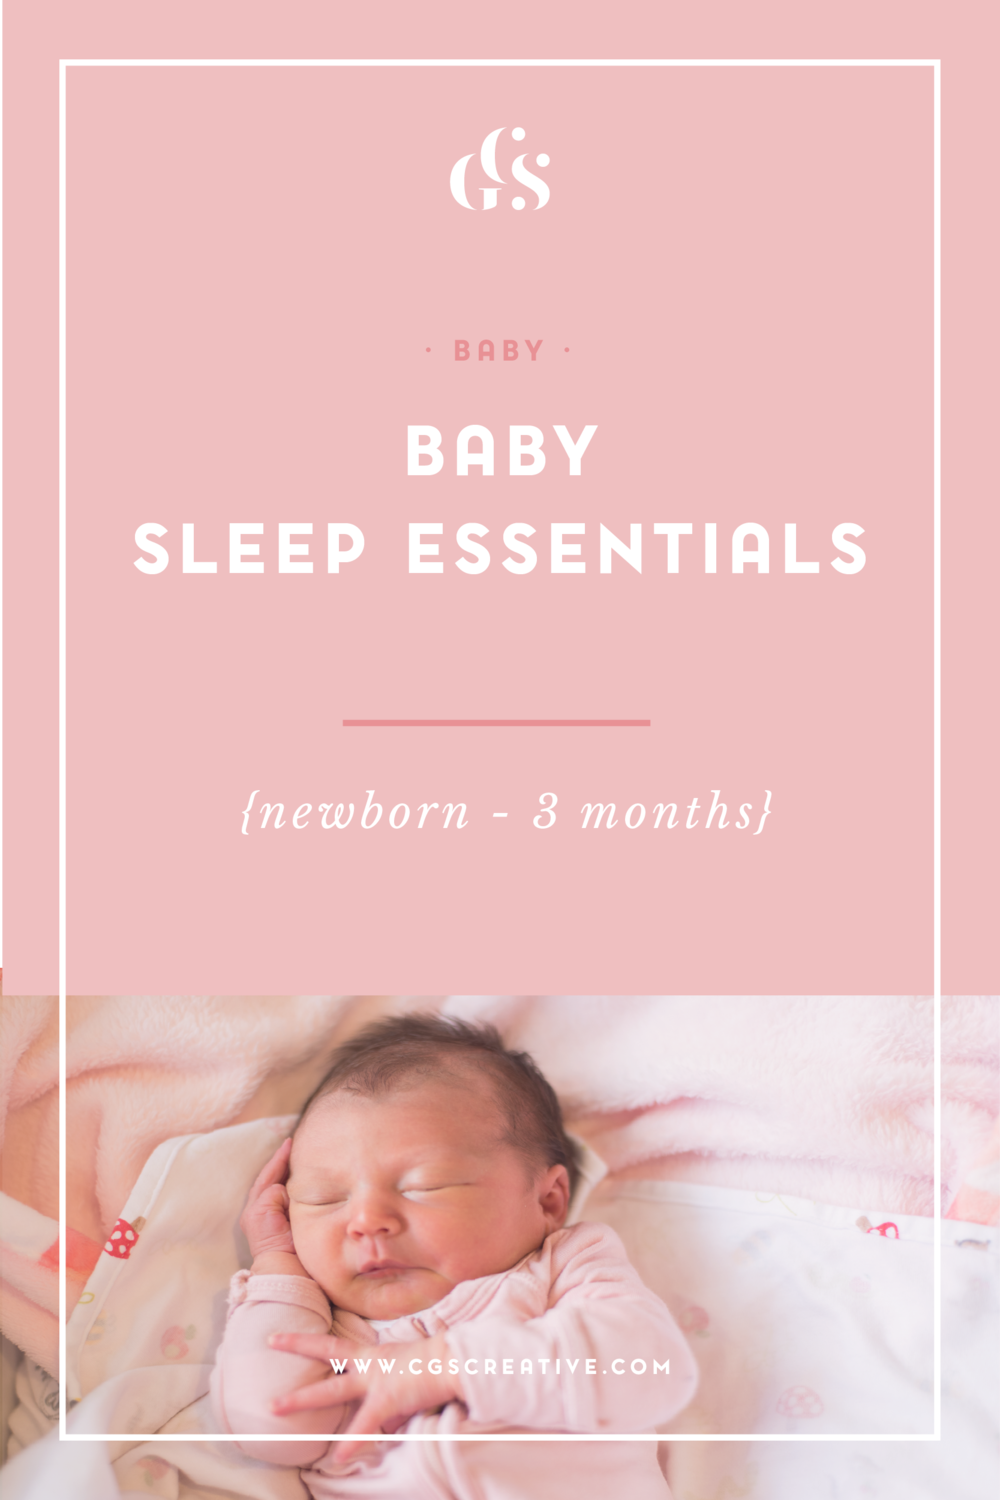 Baby Sleep Essentials Newborn to 3 months CityGirlSearching Blog-01.png